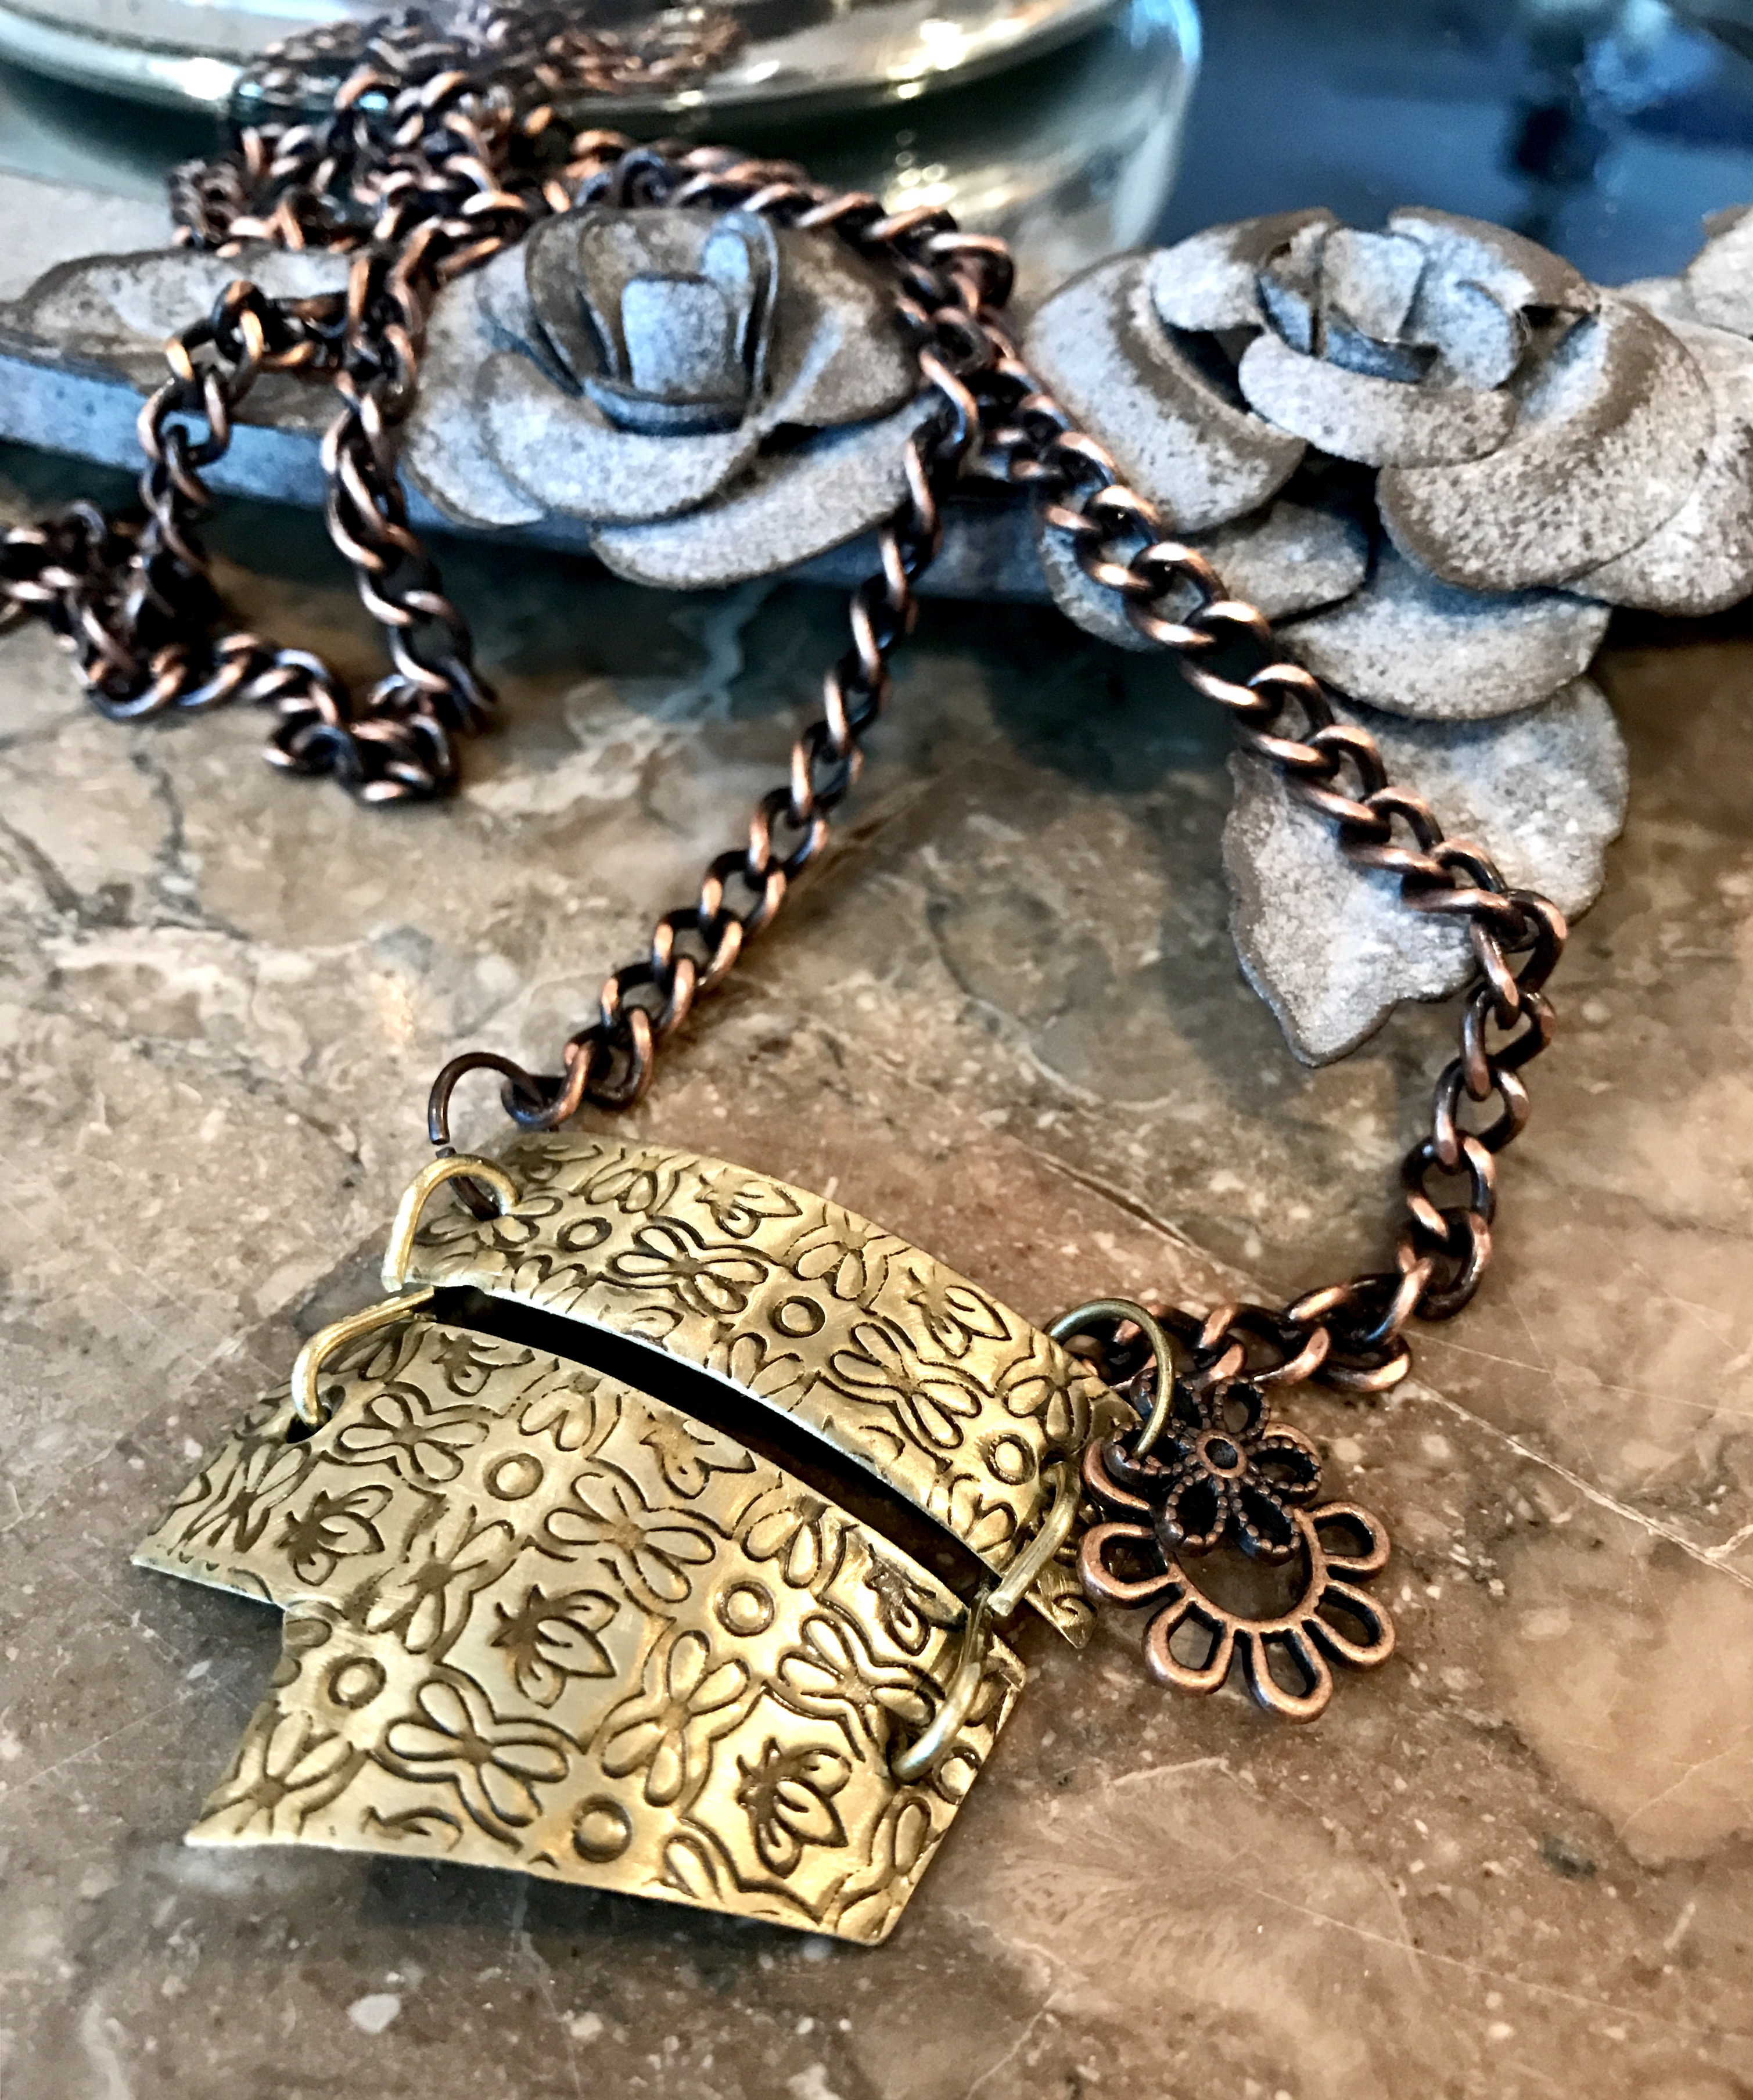 Rugged Scrap Metal Necklace